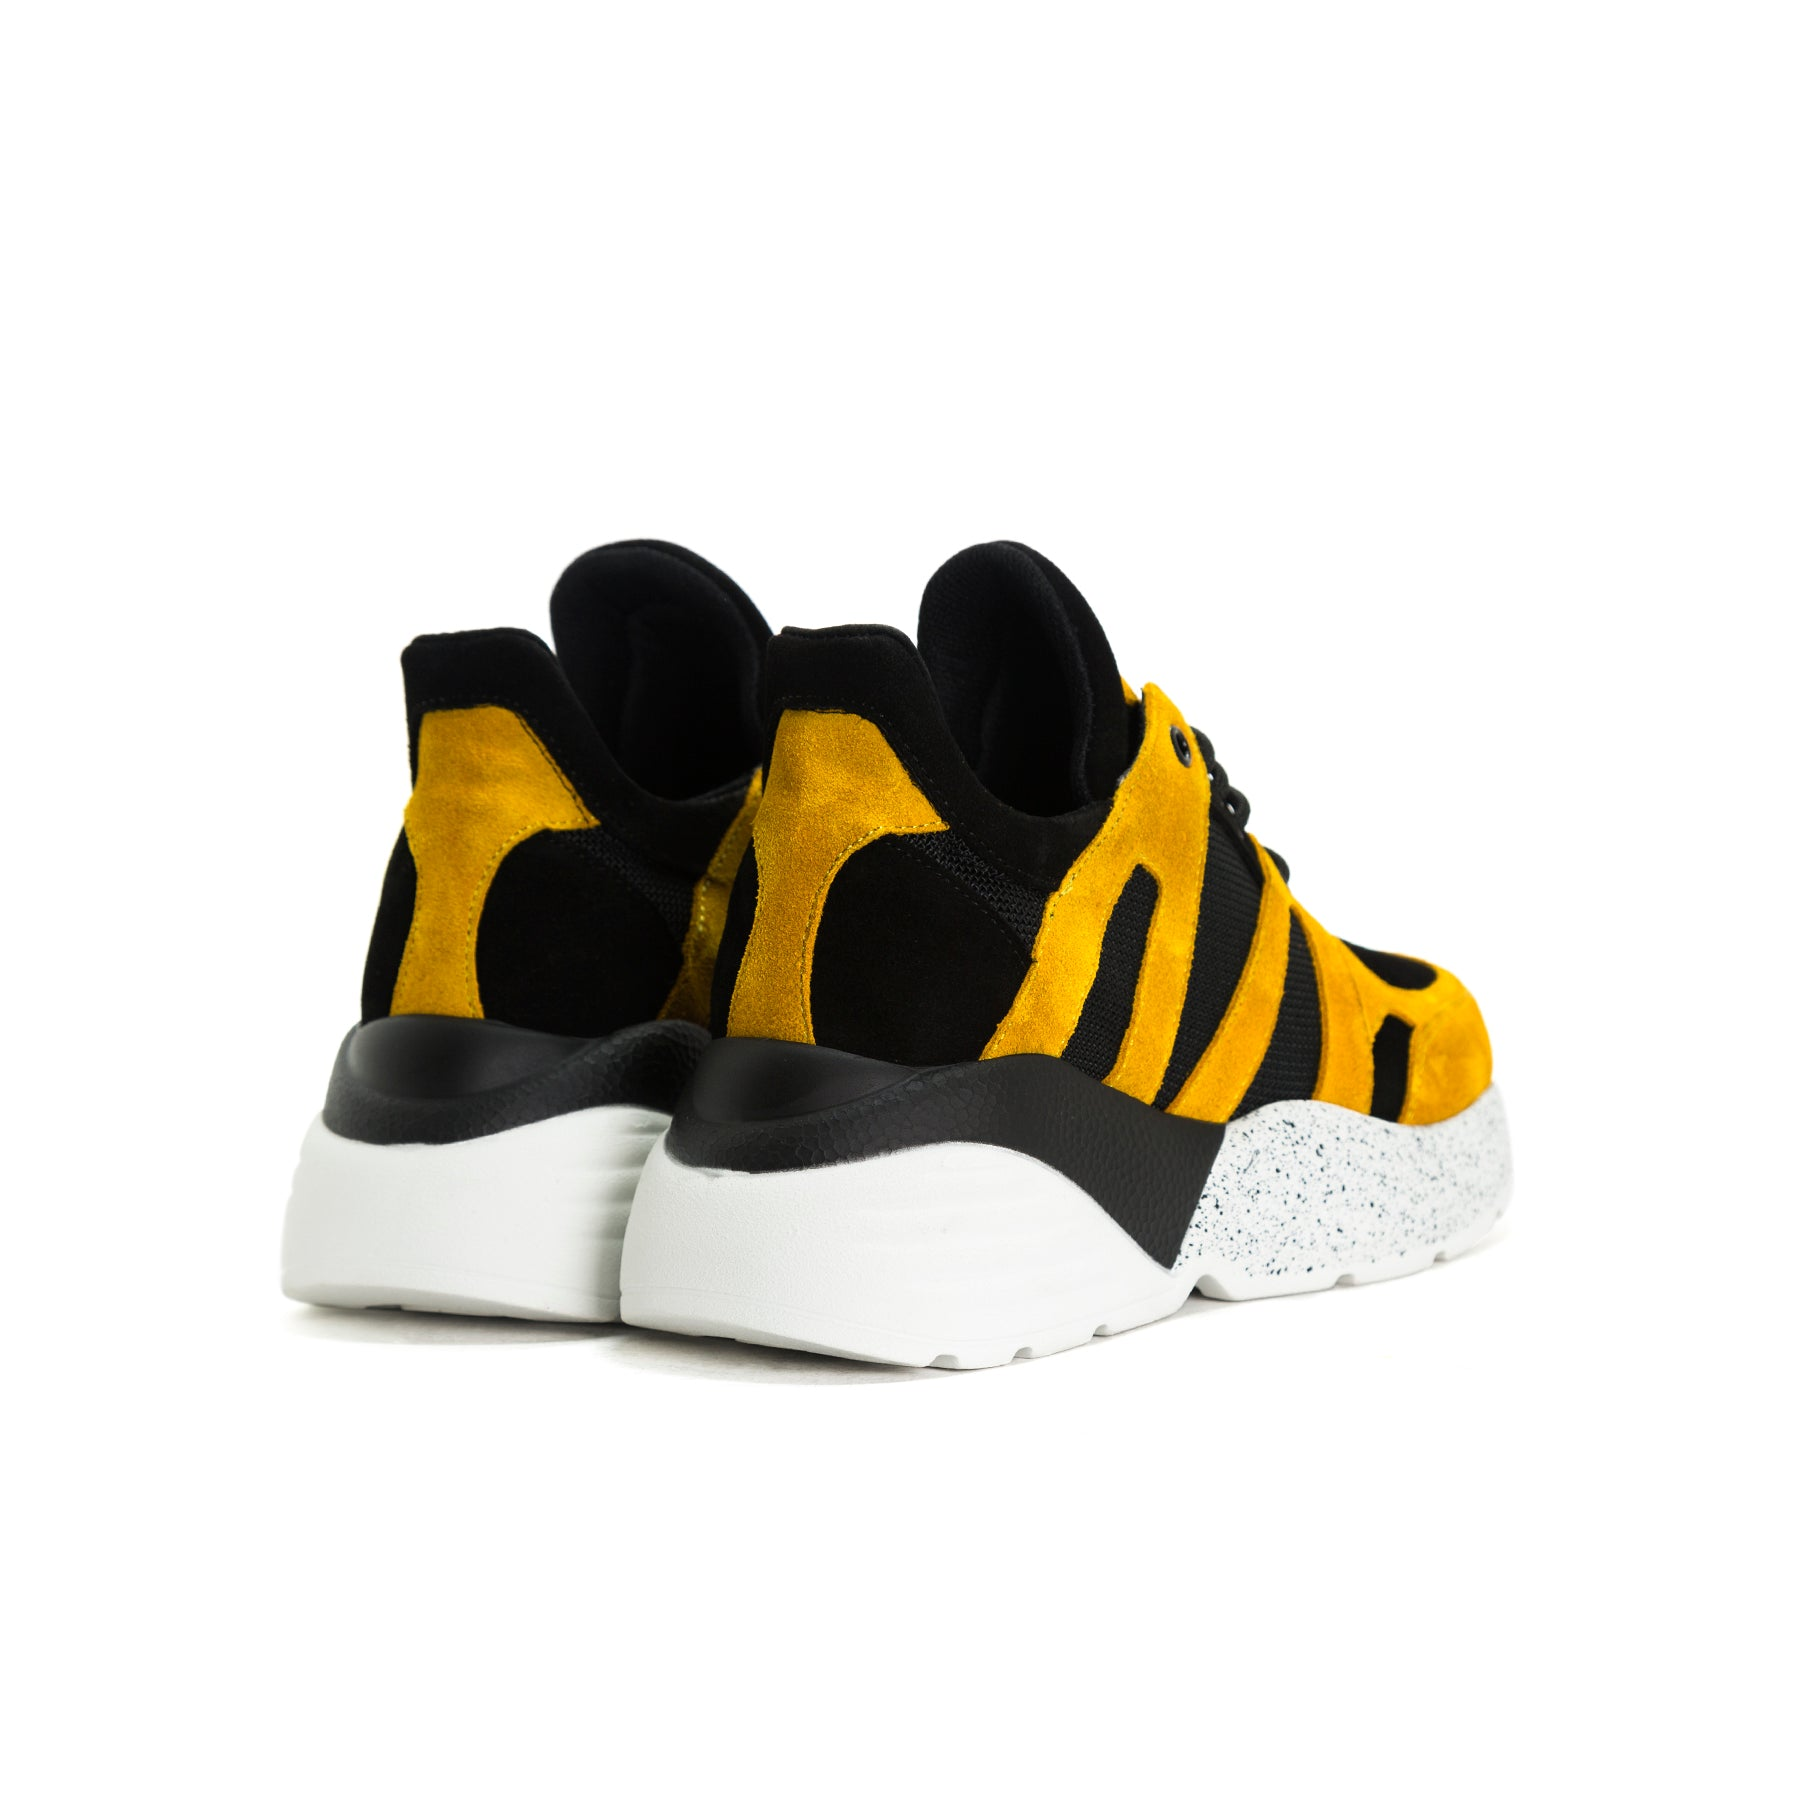 Star Black&Tan Combo Leather Sneakers